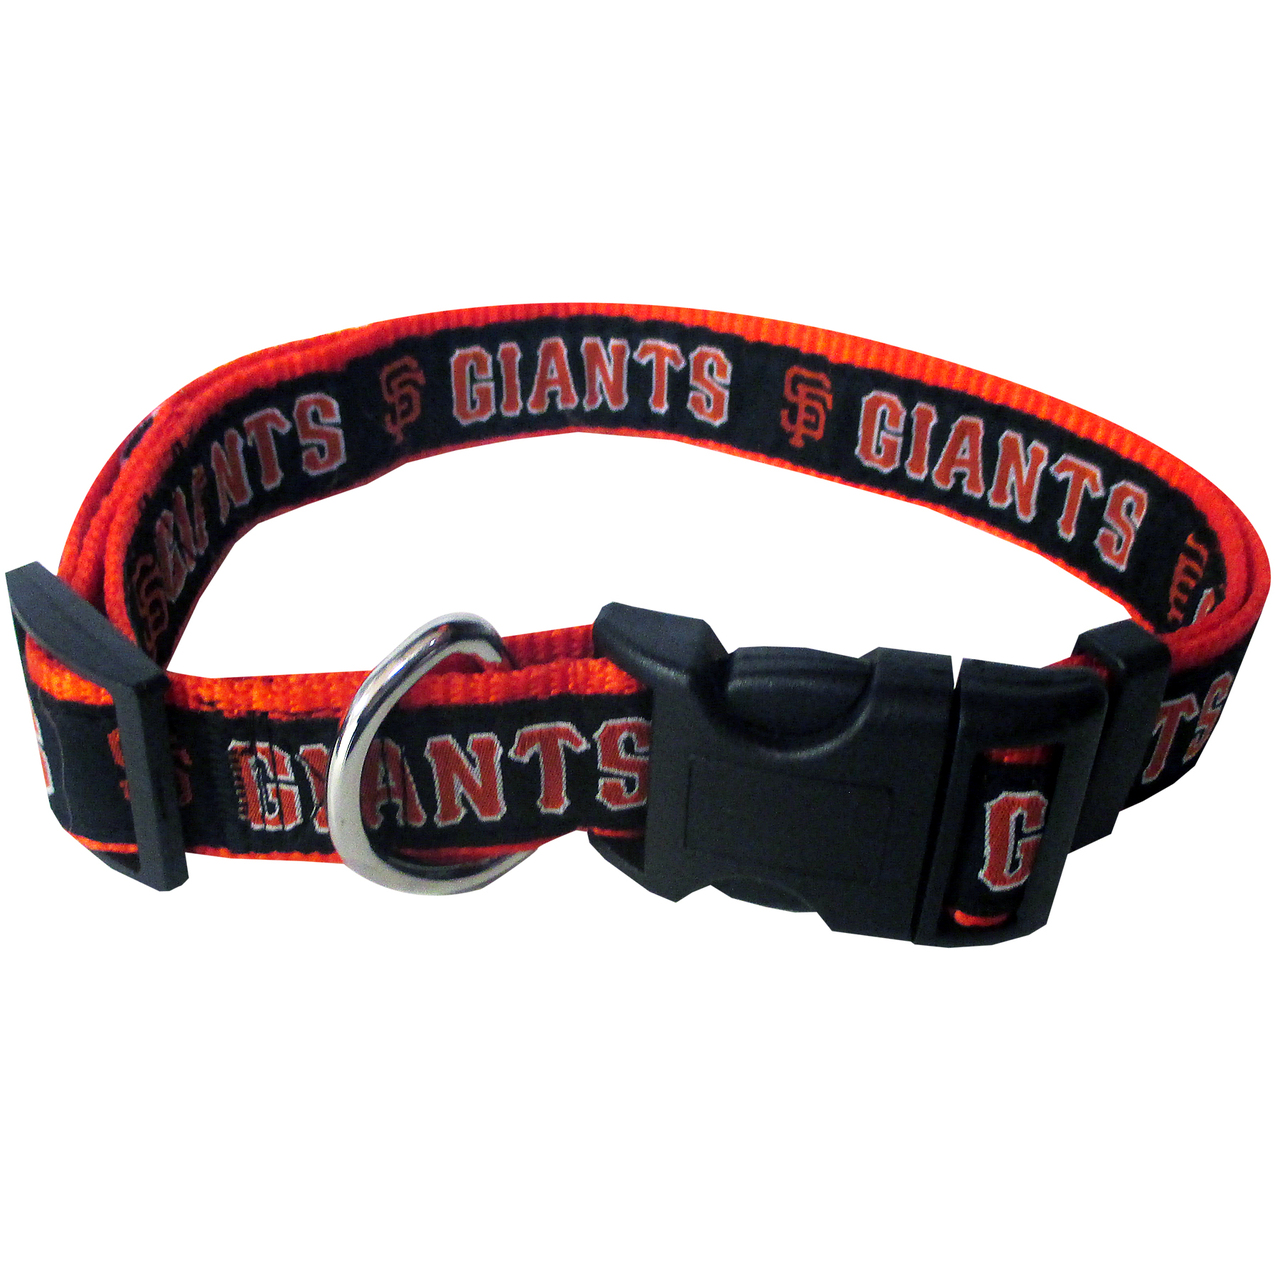 Hot Dog San Francisco Giants Dog COLLAR